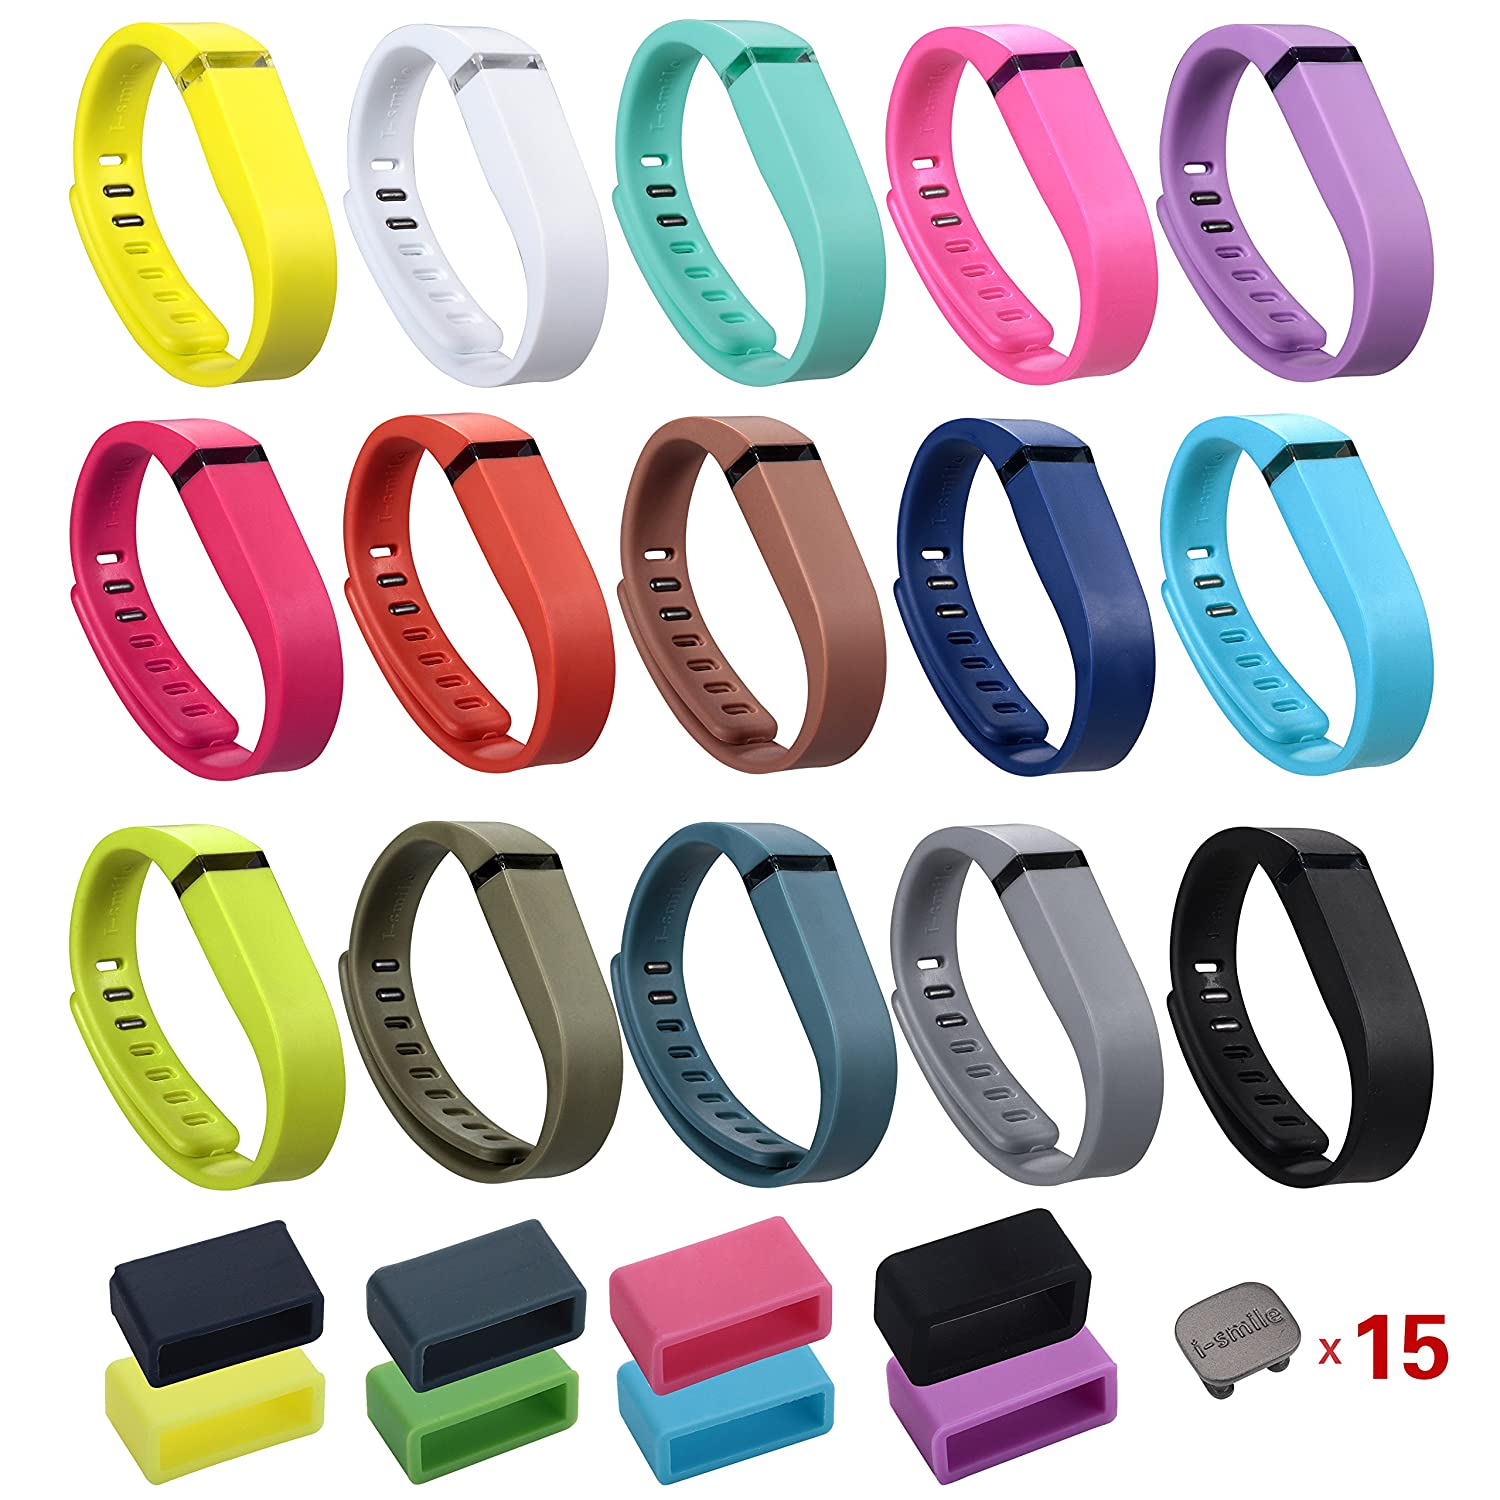 I-SMILE 15PCS Replacement Bands with Metal Clasps for Fitbit Flex Wireless Activity Bracelet Sport Wristband No Tracker, Replacement Bands Only